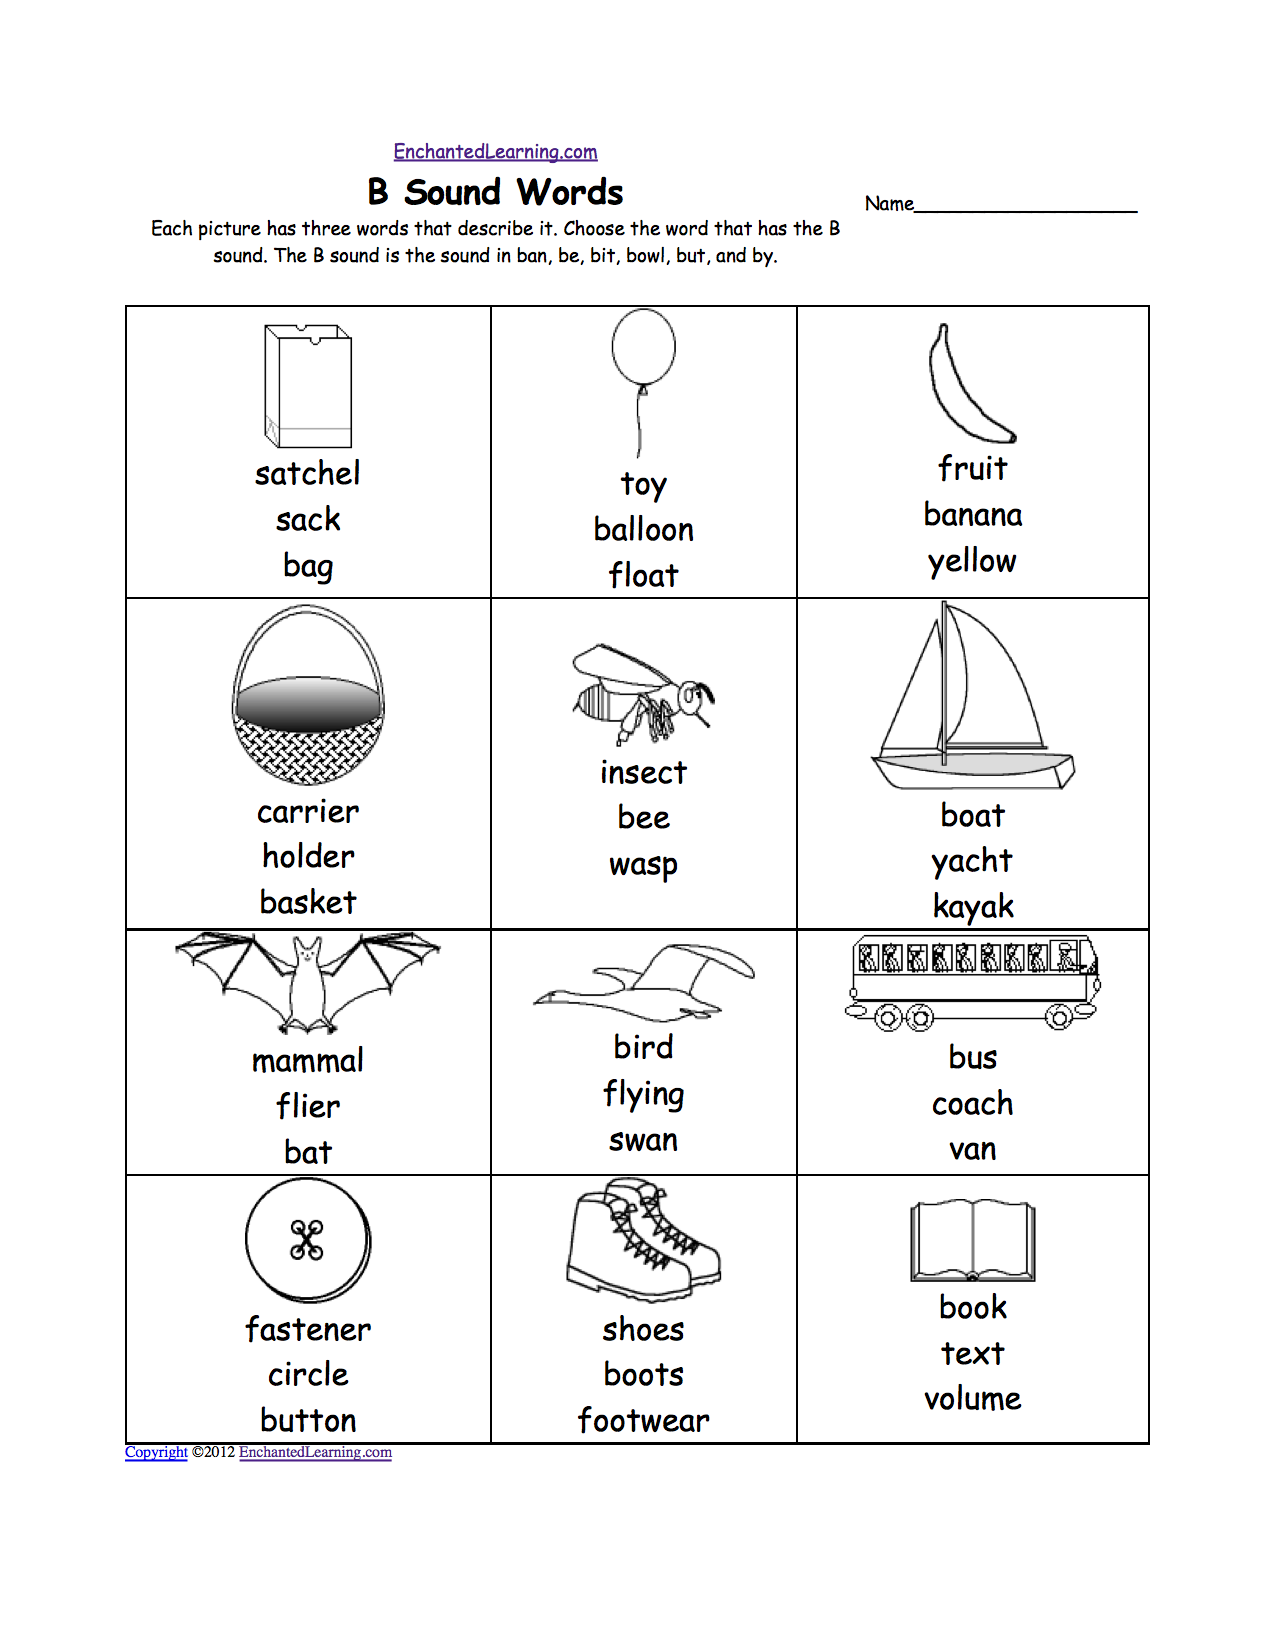 Weirdmailus  Personable Phonics Worksheets Multiple Choice Worksheets To Print  With Exquisite Quotbquot Sound Phonics Worksheet Multiple Choice Each Picture Has Three Words That Describe It Choose The Word That Has A Quotbquot Sound The Quotbquot Sound Is The Sound  With Charming Trigonometry Ratios In Right Triangles Worksheet Also The Quadratic Formula And The Discriminant Worksheet In Addition Colors Worksheets And Auditory Processing Worksheets As Well As Er Worksheets Additionally Teacher Super Worksheets From Enchantedlearningcom With Weirdmailus  Exquisite Phonics Worksheets Multiple Choice Worksheets To Print  With Charming Quotbquot Sound Phonics Worksheet Multiple Choice Each Picture Has Three Words That Describe It Choose The Word That Has A Quotbquot Sound The Quotbquot Sound Is The Sound  And Personable Trigonometry Ratios In Right Triangles Worksheet Also The Quadratic Formula And The Discriminant Worksheet In Addition Colors Worksheets From Enchantedlearningcom